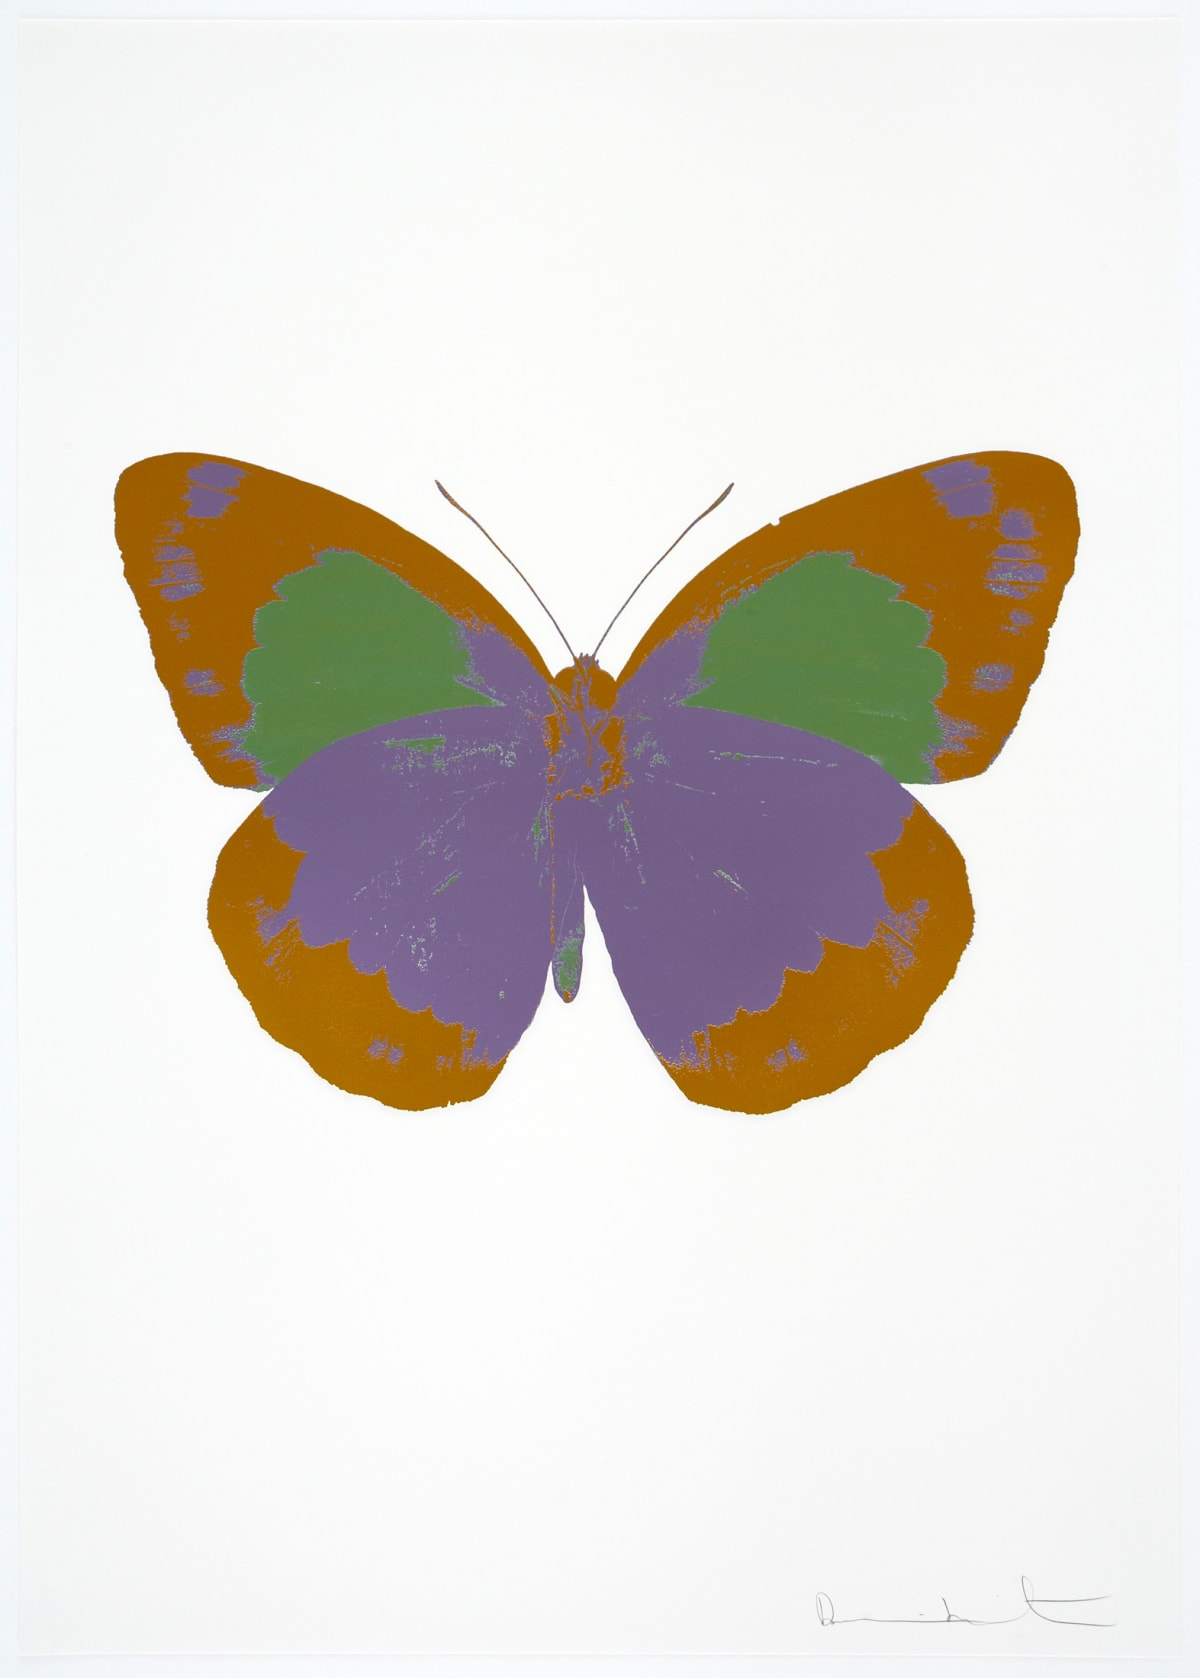 Damien Hirst The Souls II - Aquarius/Paradise Copper/Leaf Green, 2010 3 colour foil block on 300gsm Arches 88 archival paper. Signed and numbered. Published by Paul Stolper and Other Criteria 72 x 51cm OC7868 / 658-51 Edition of 15